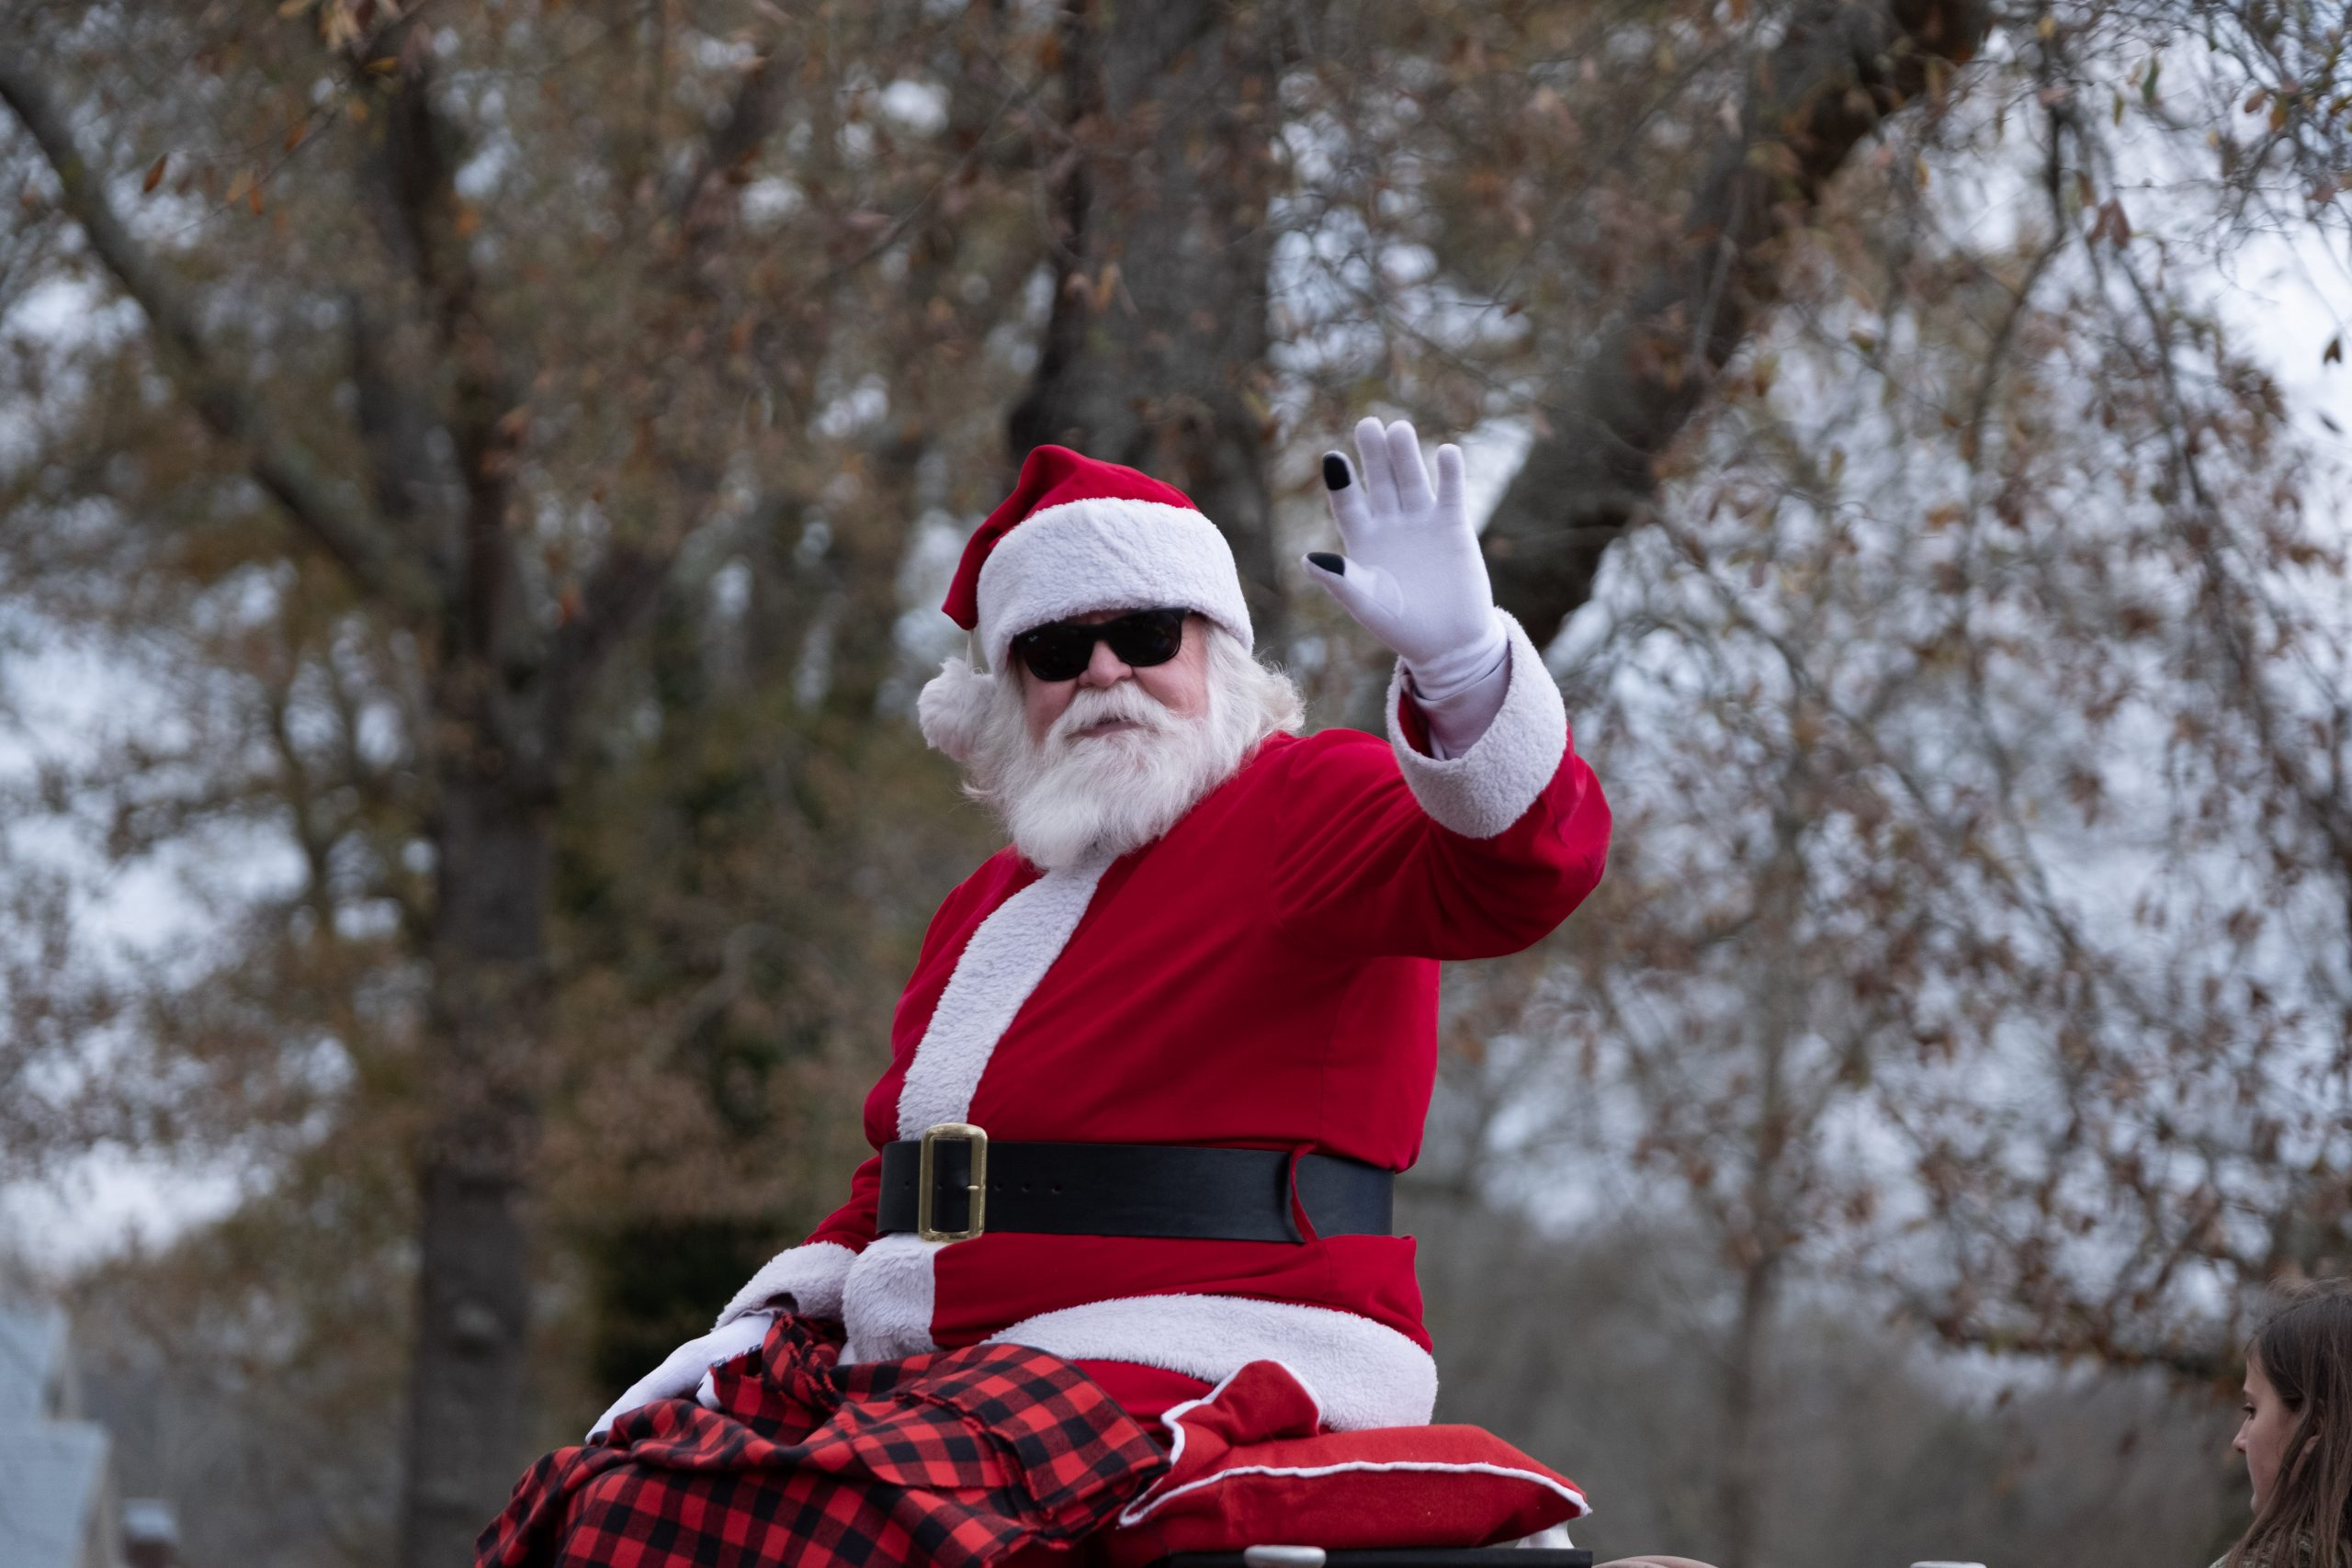 Argo tables decision on whether or not to have Christmas parade